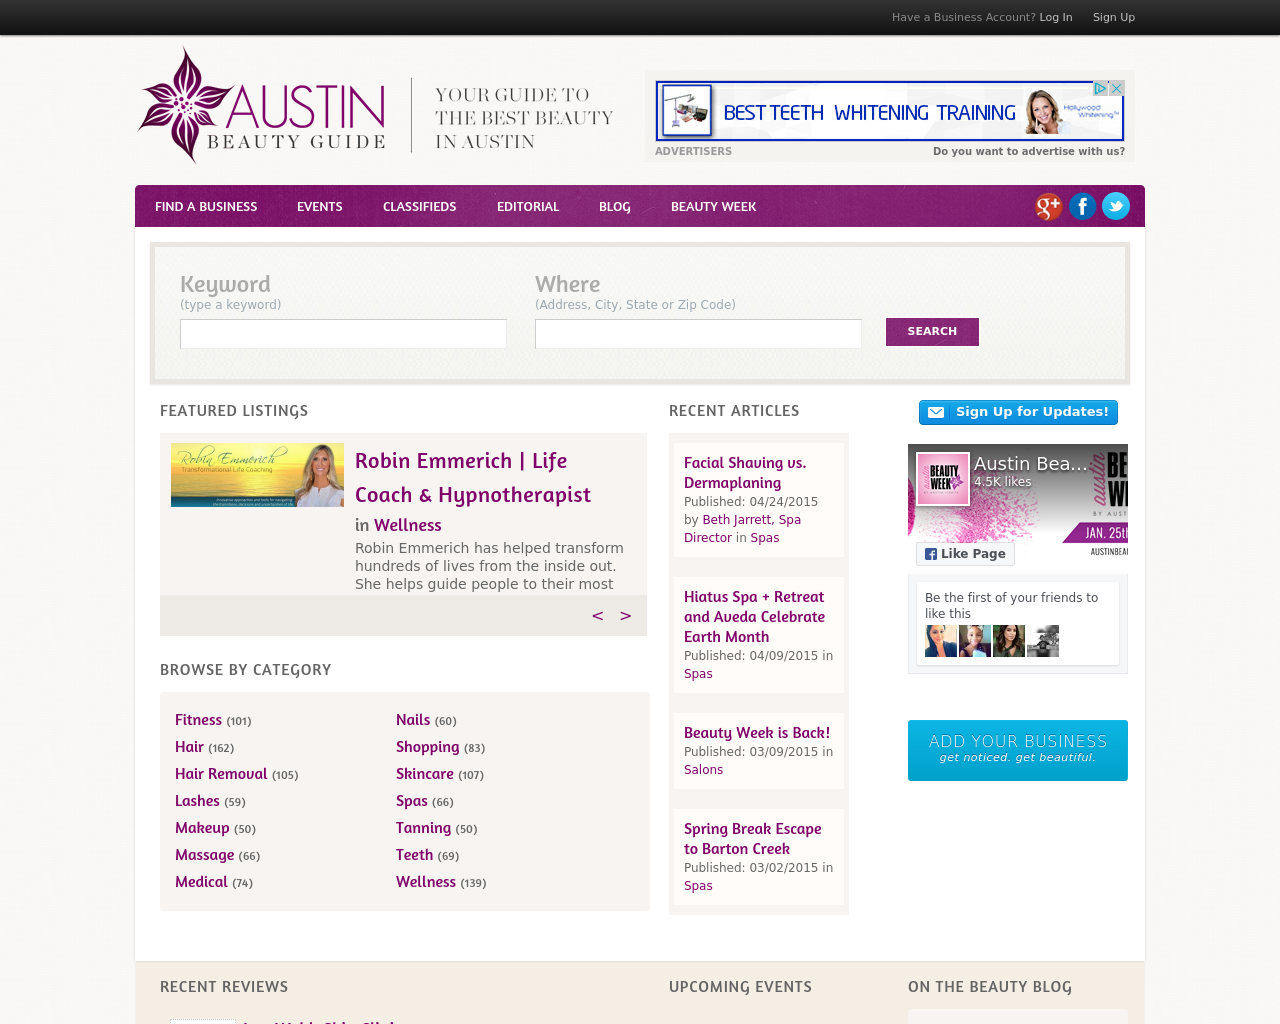 Austin-Beauty-Guide-Advertising-Reviews-Pricing